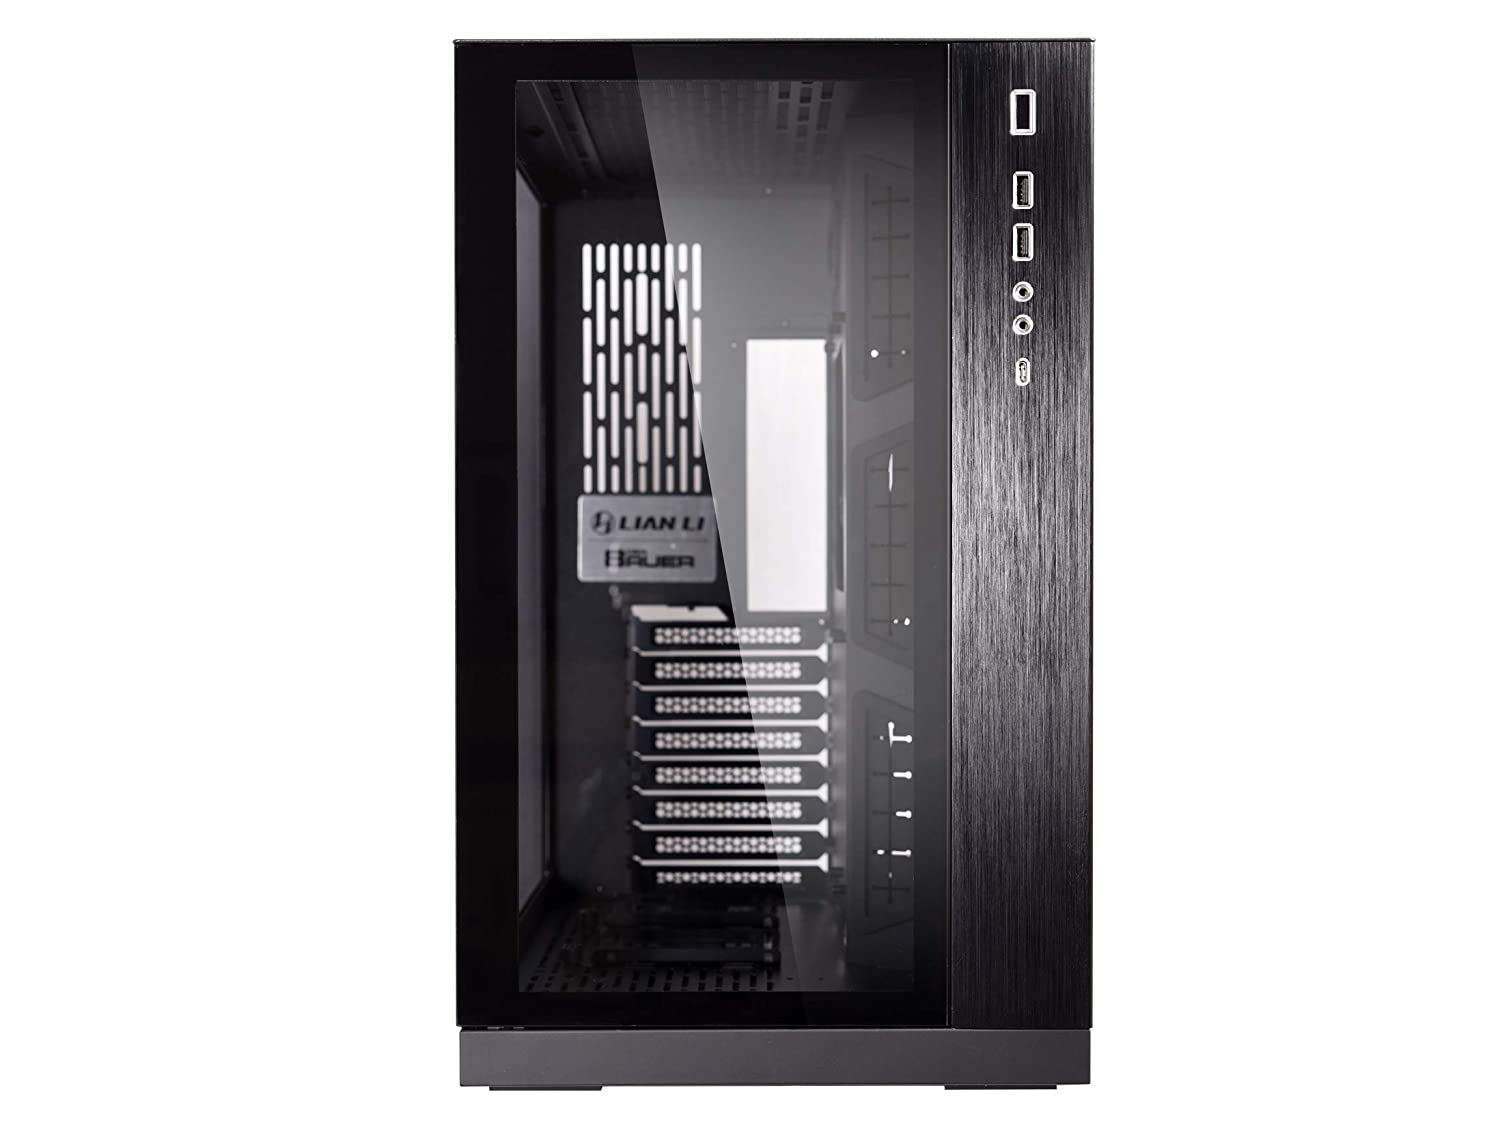 Lian Li PC-O11DX 011 Dynamic Tempered Glass on The Front Chassis Body SECC ATX Mid Tower Gaming Computer Case Black